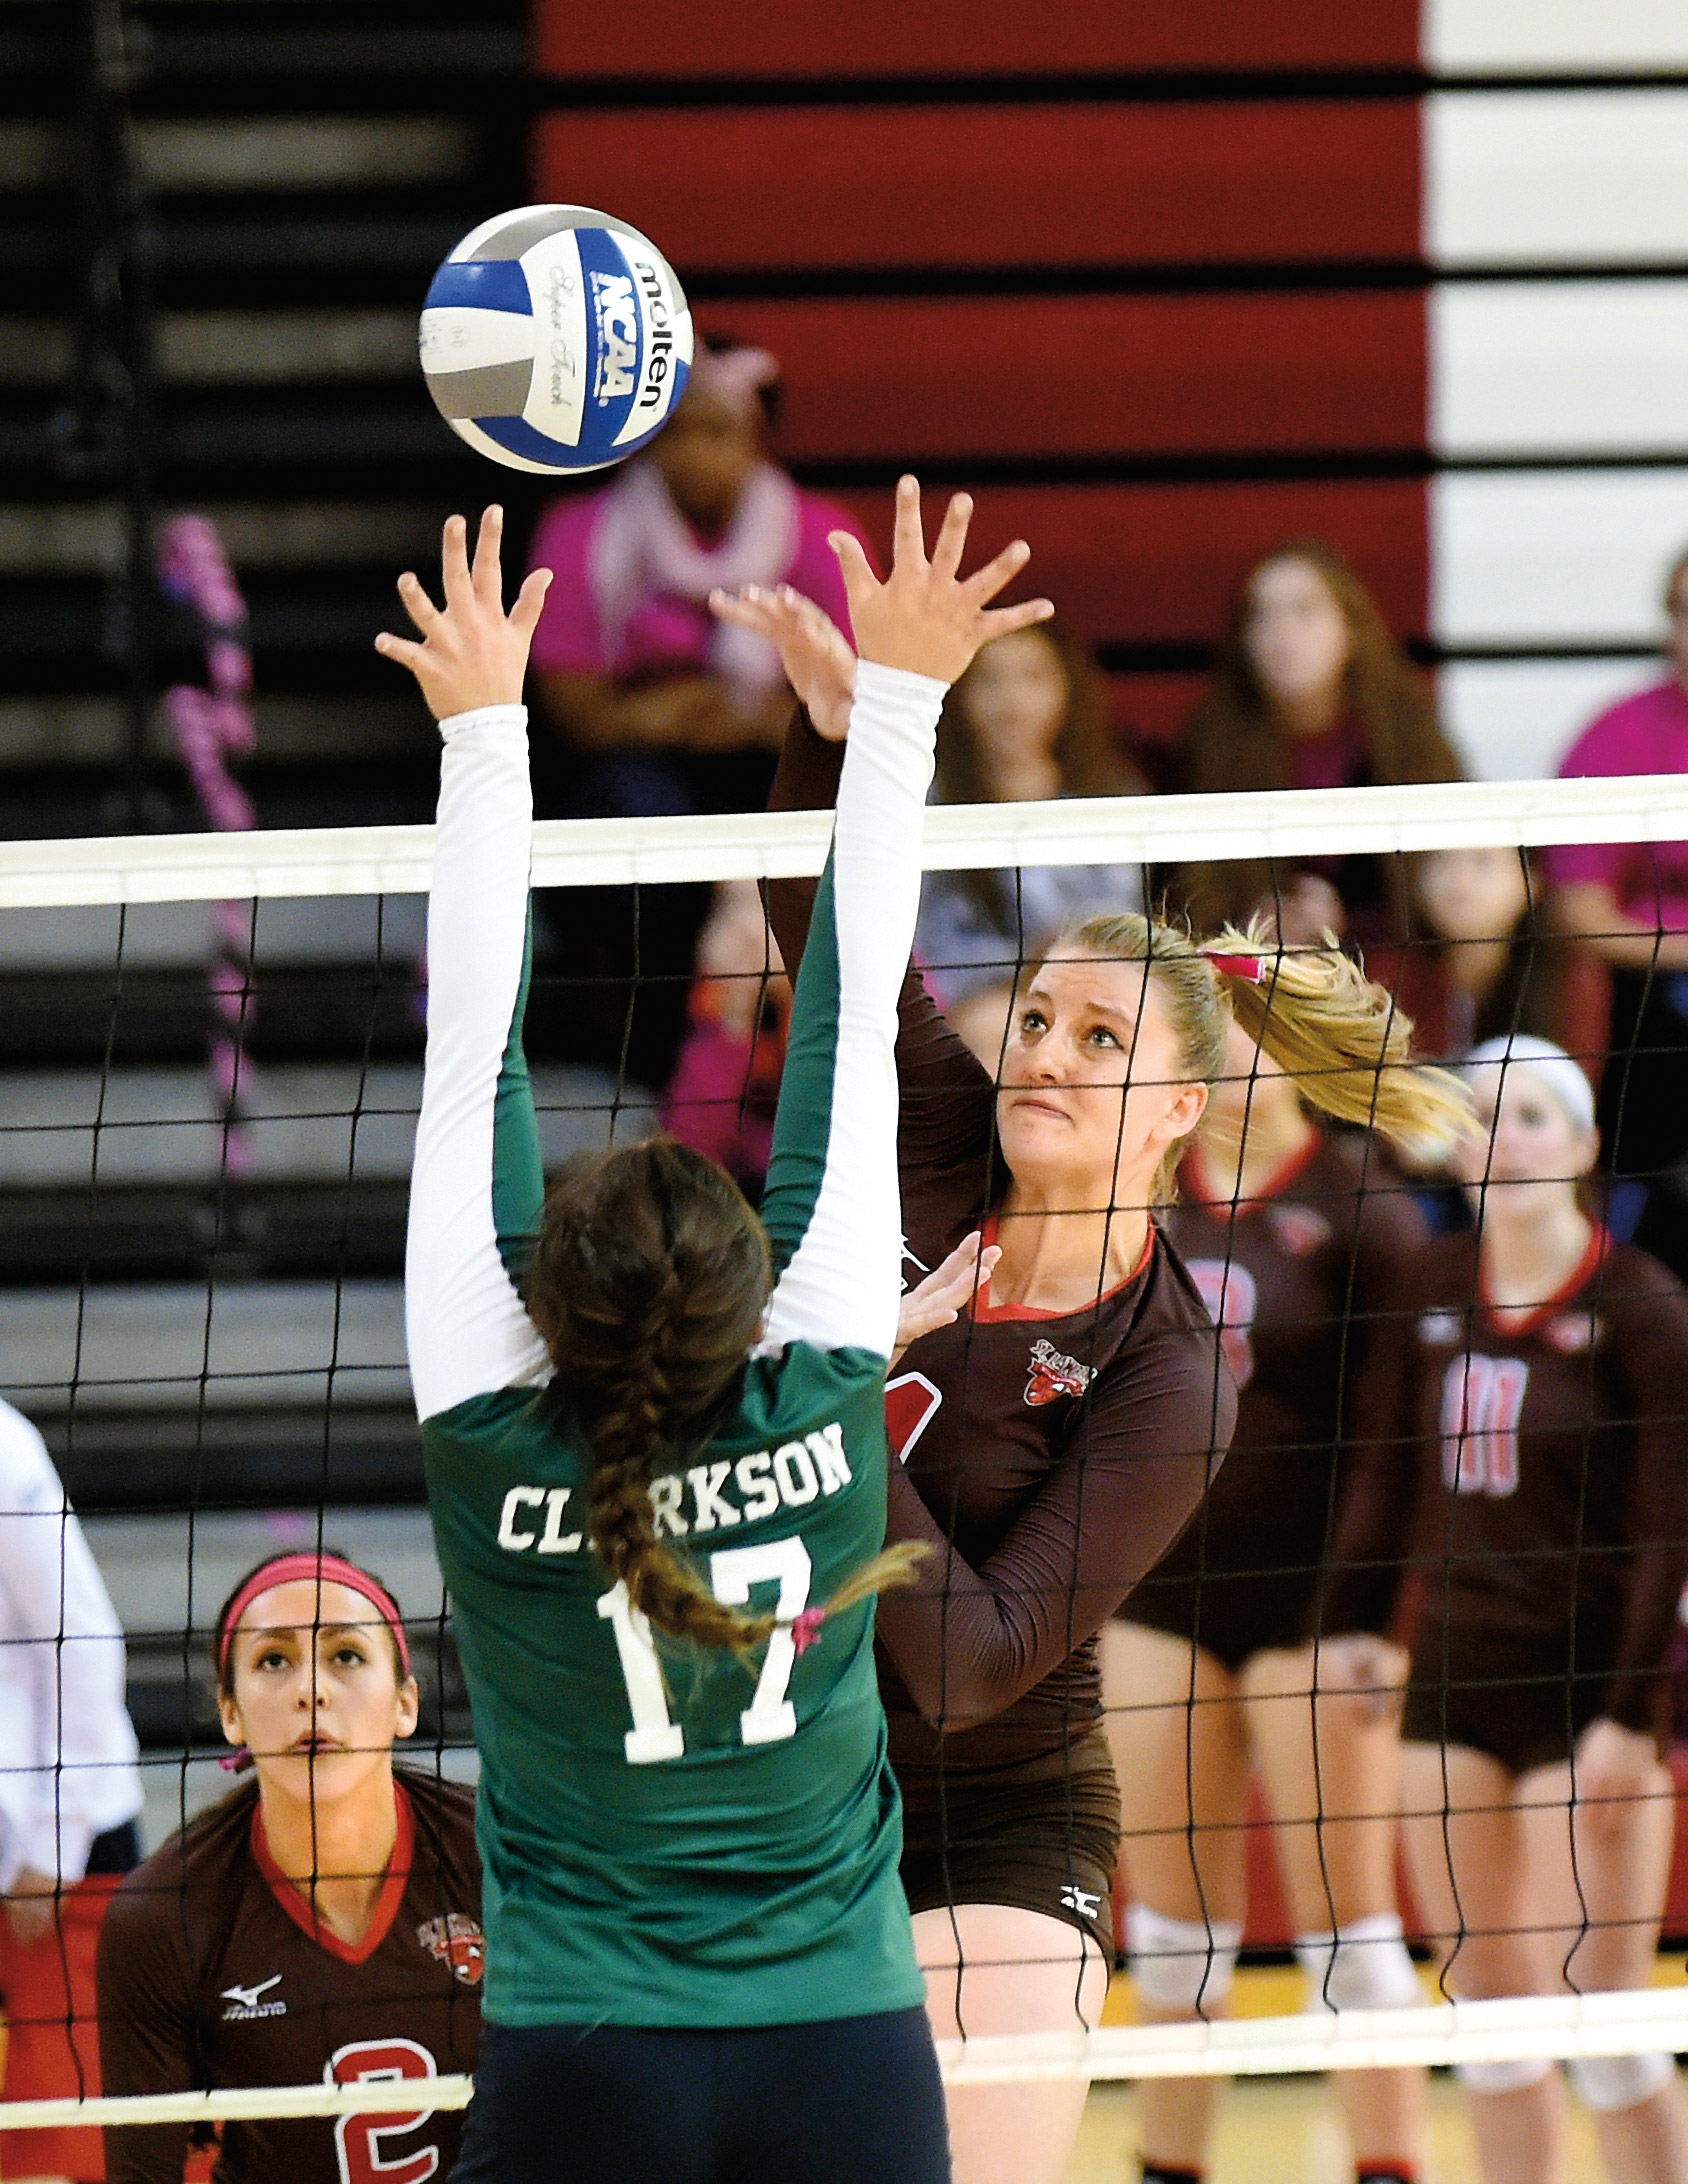 Whether she's powering volleyballs over the net in Burkman Gym or studying bats in Central America to learn more about disease transmission, Lexi Brown '16 is a St. Lawrence standout. (Photo courtesy Lexi Brown)